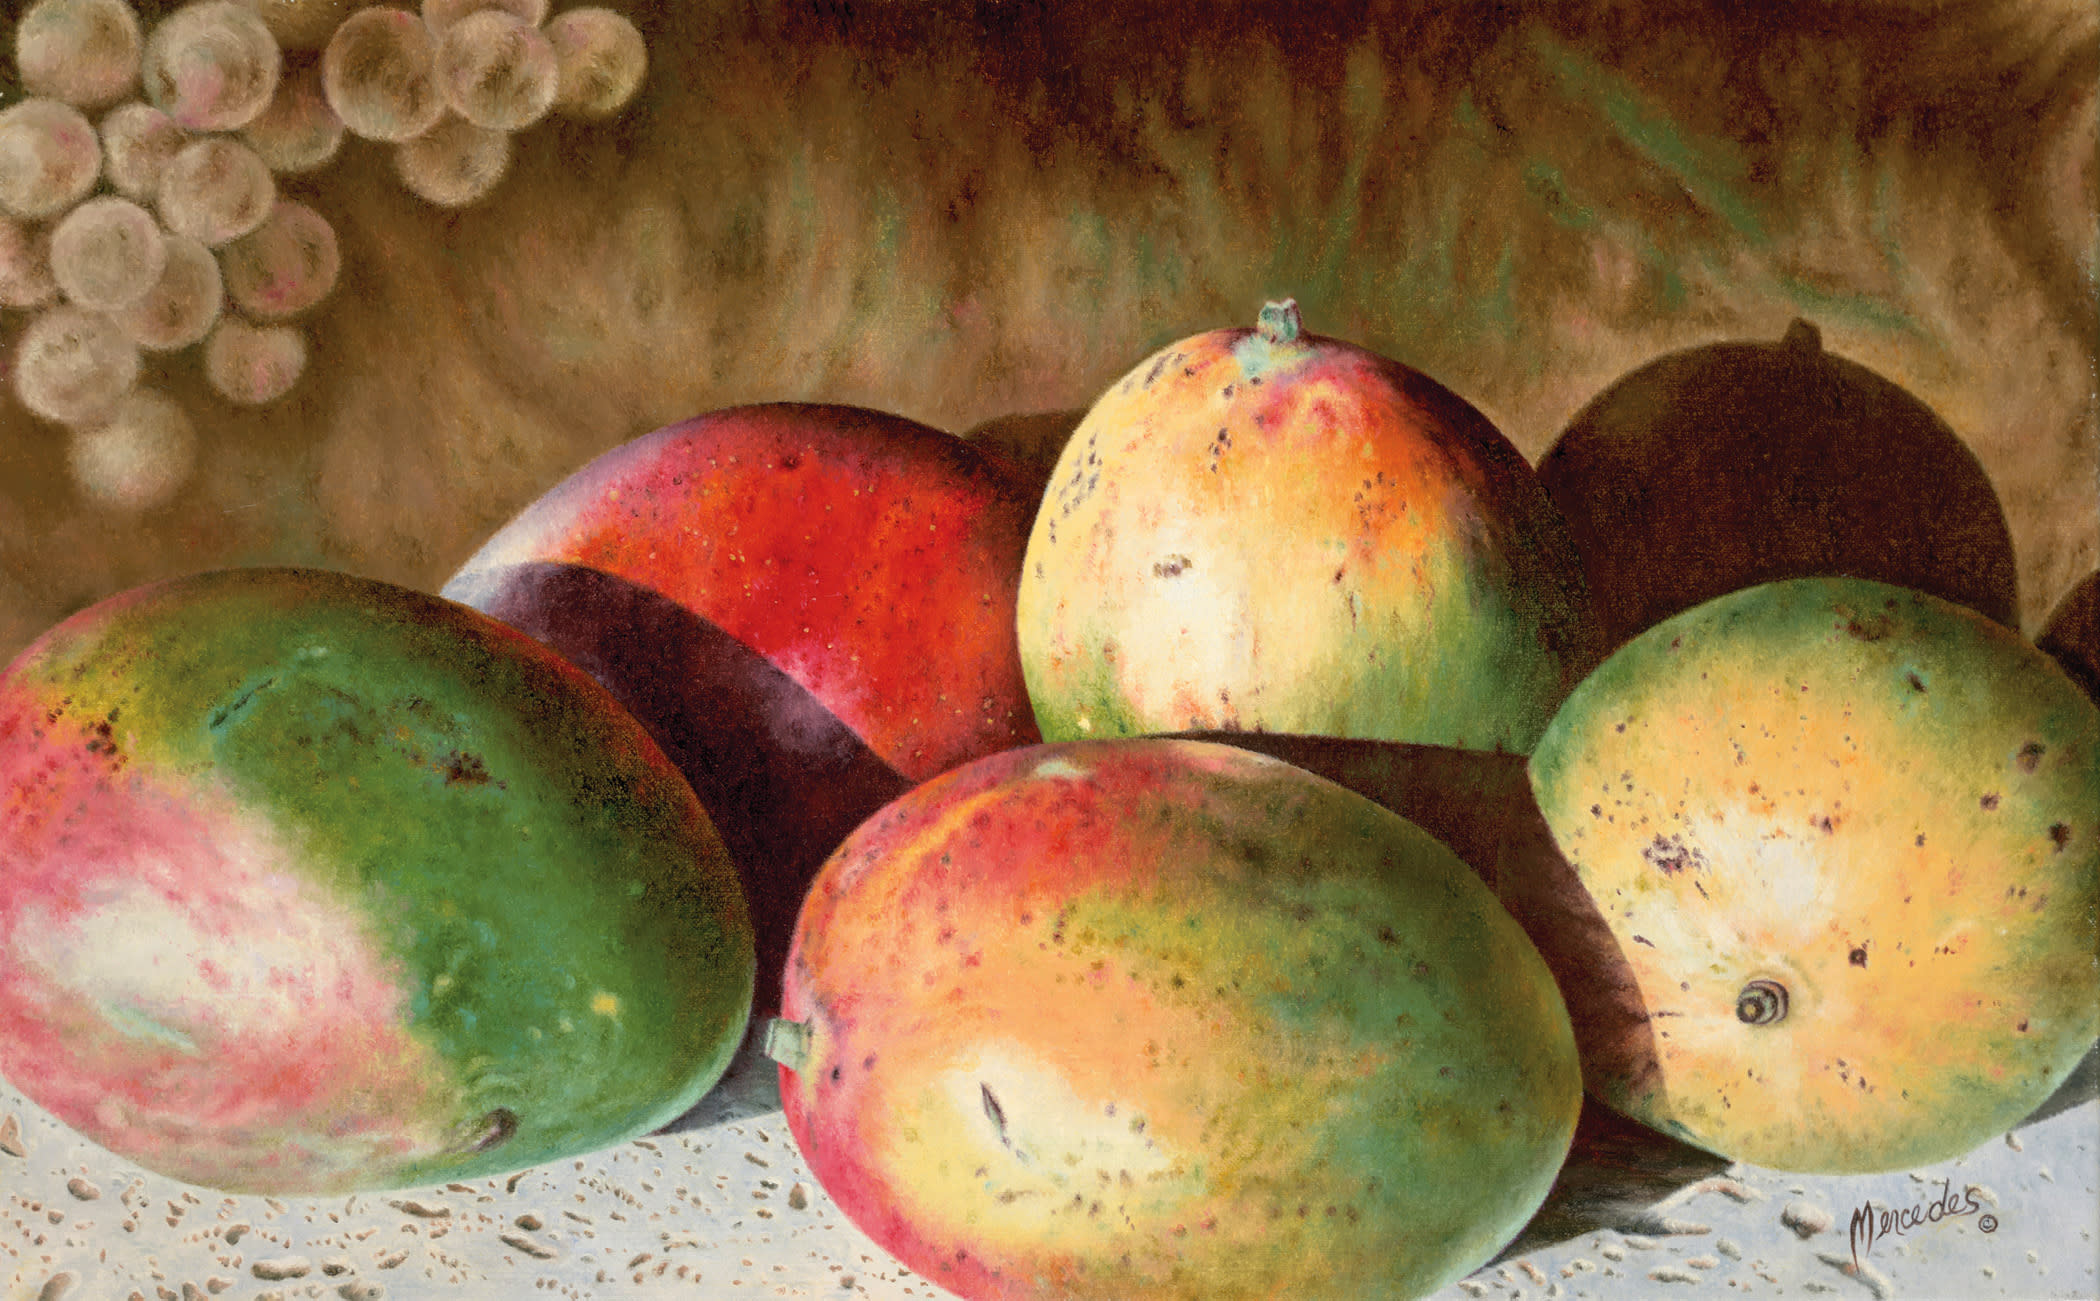 Mangos from harvest changed to rgb3 21 13 pepamb